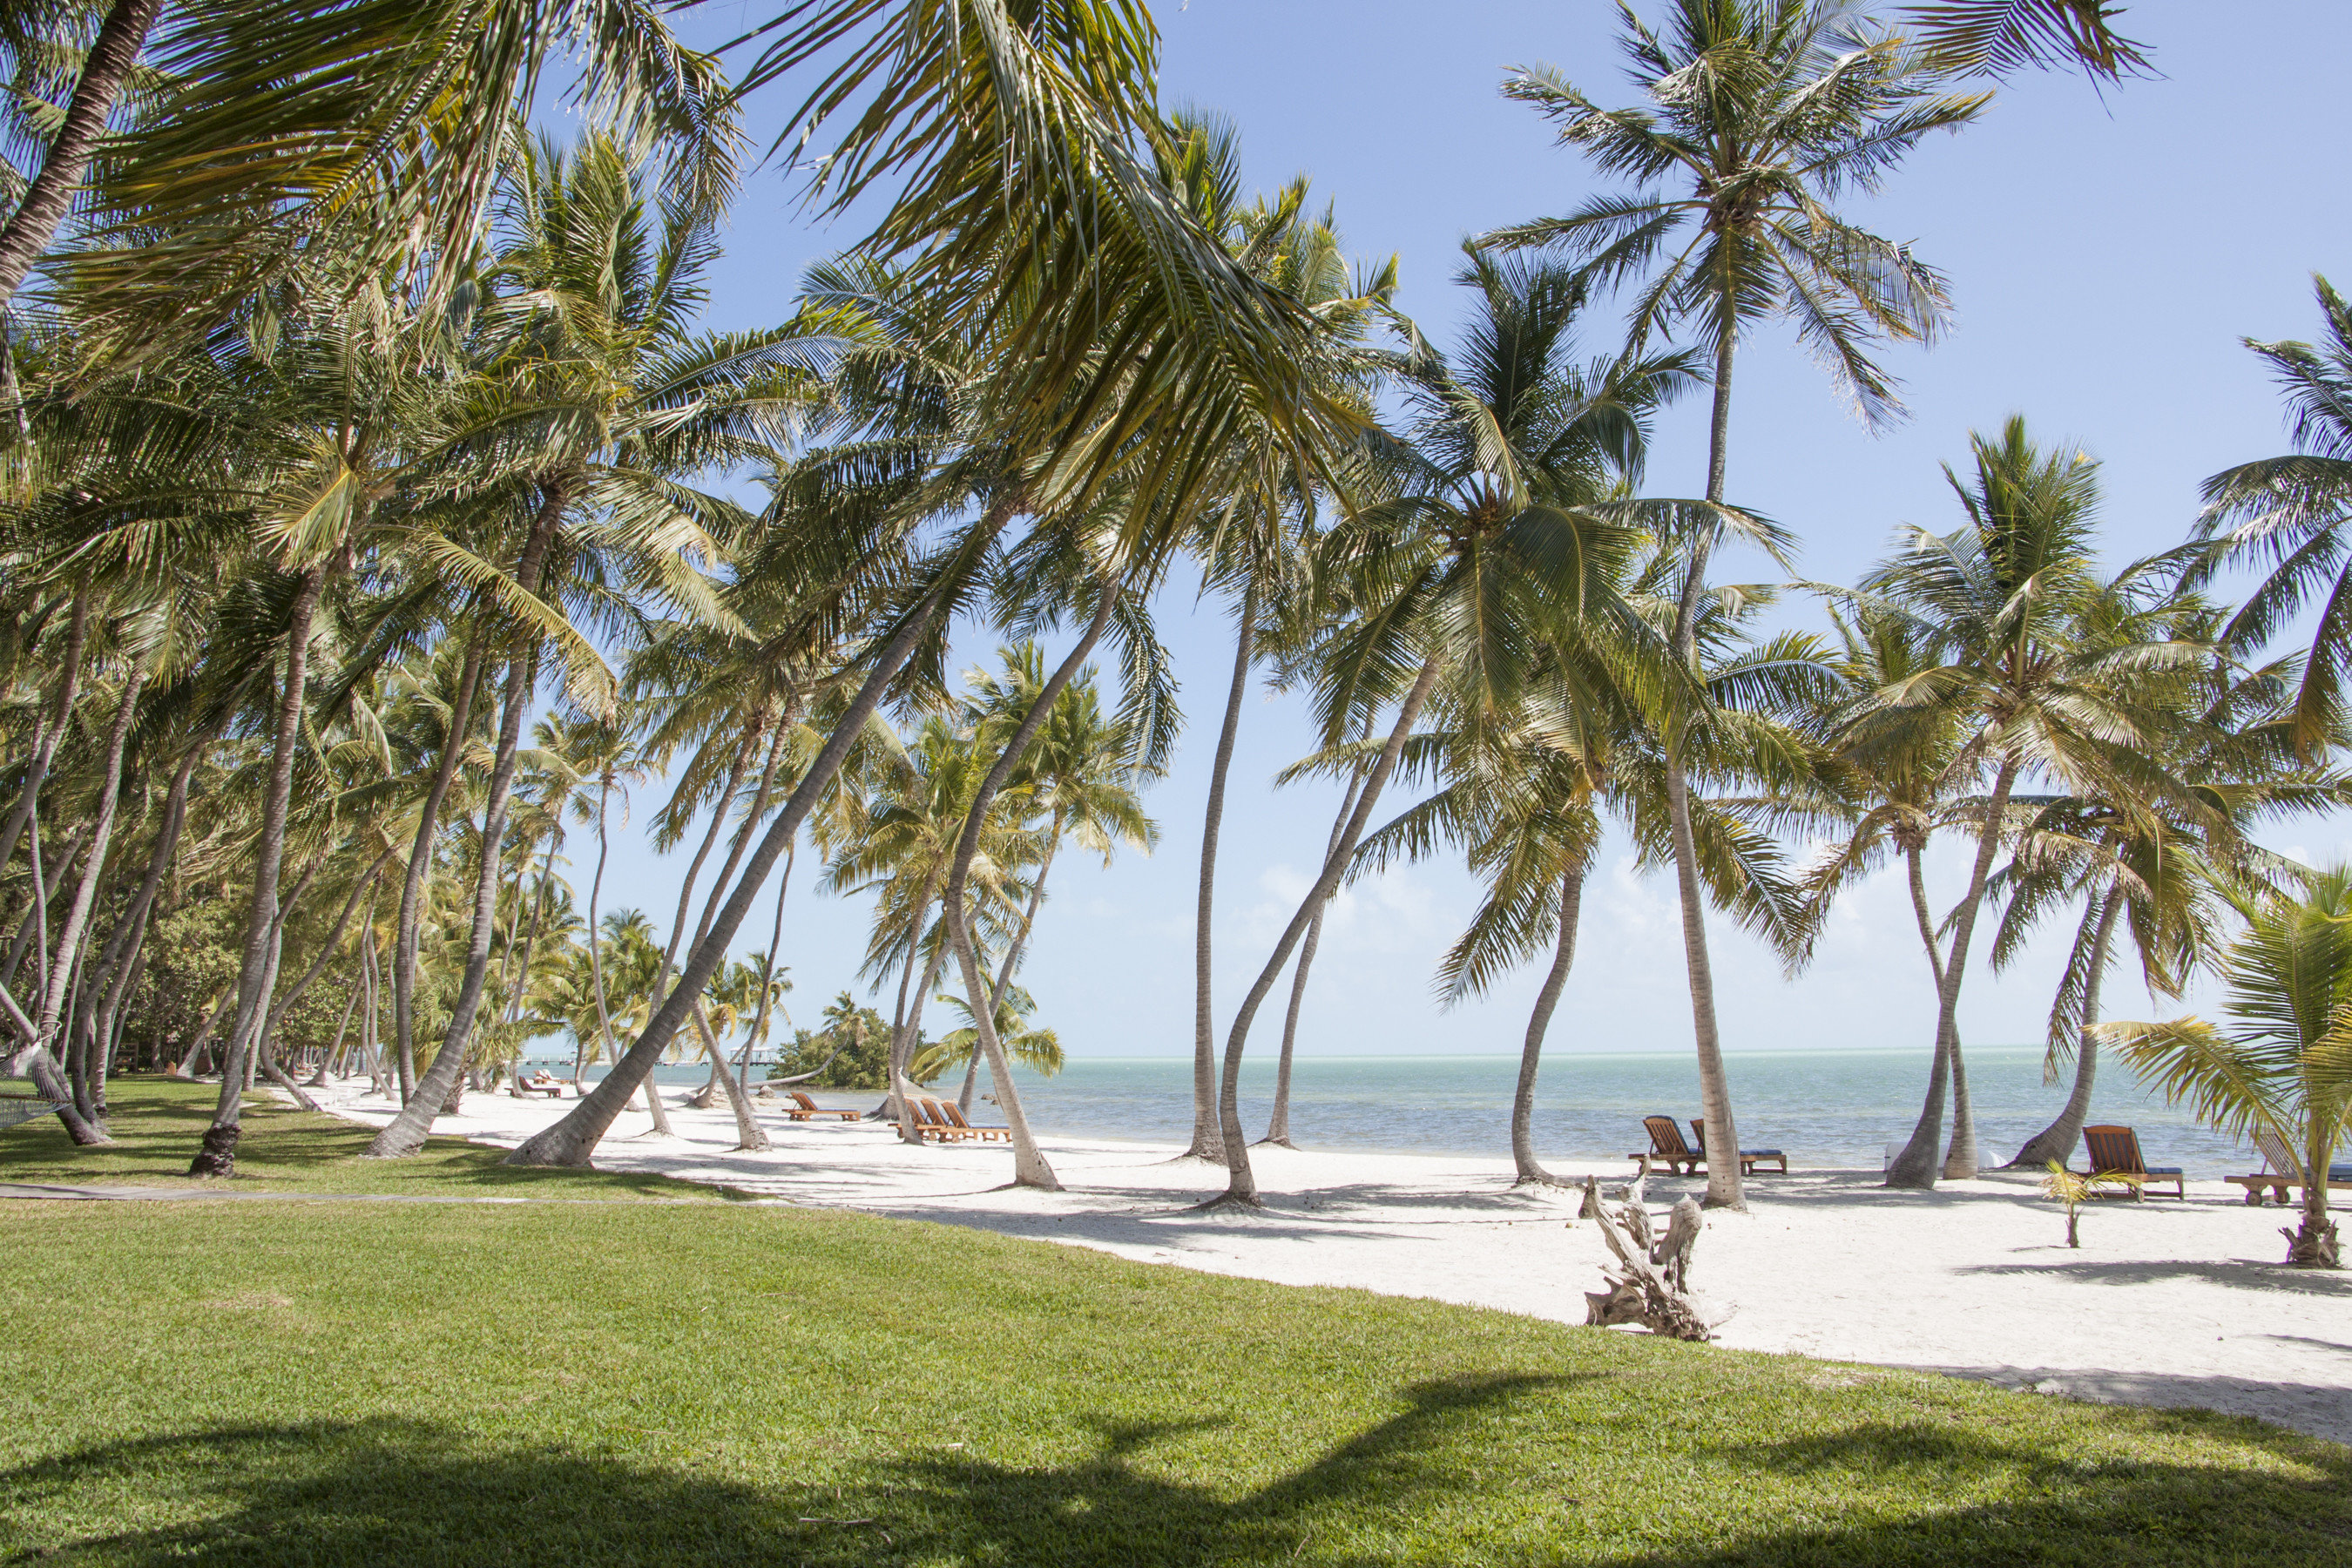 Hotels Romance tree outdoor grass palm sky plant water palm tree arecales tropics Beach Resort vacation caribbean Sea date palm coconut shore